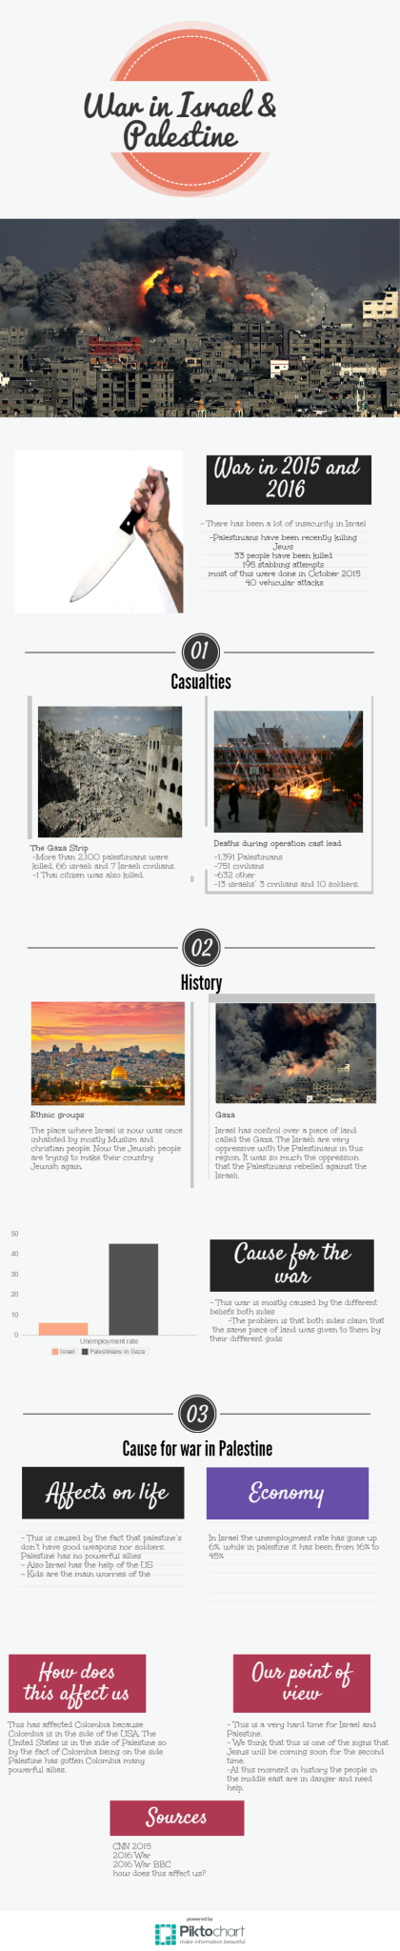 war-in-israel-and-palestine